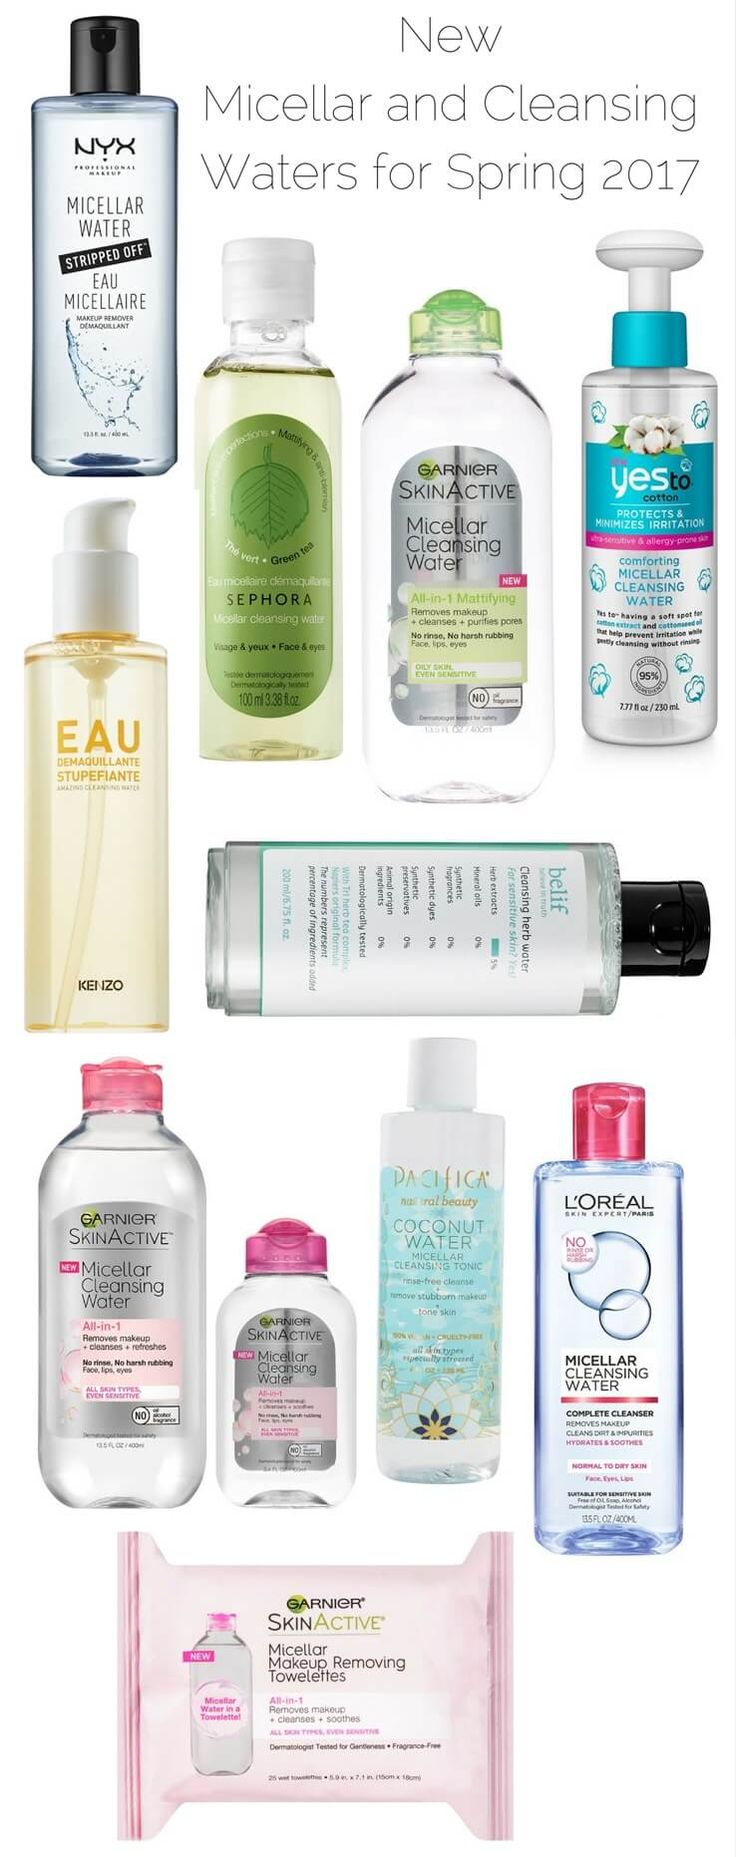 10 New Micellar and Cleansing Waters Available for Spring 2017 http://www.musingsofamuse.com/2017/01/10-new-micellar-cleansing-waters-available-spring-2017.html